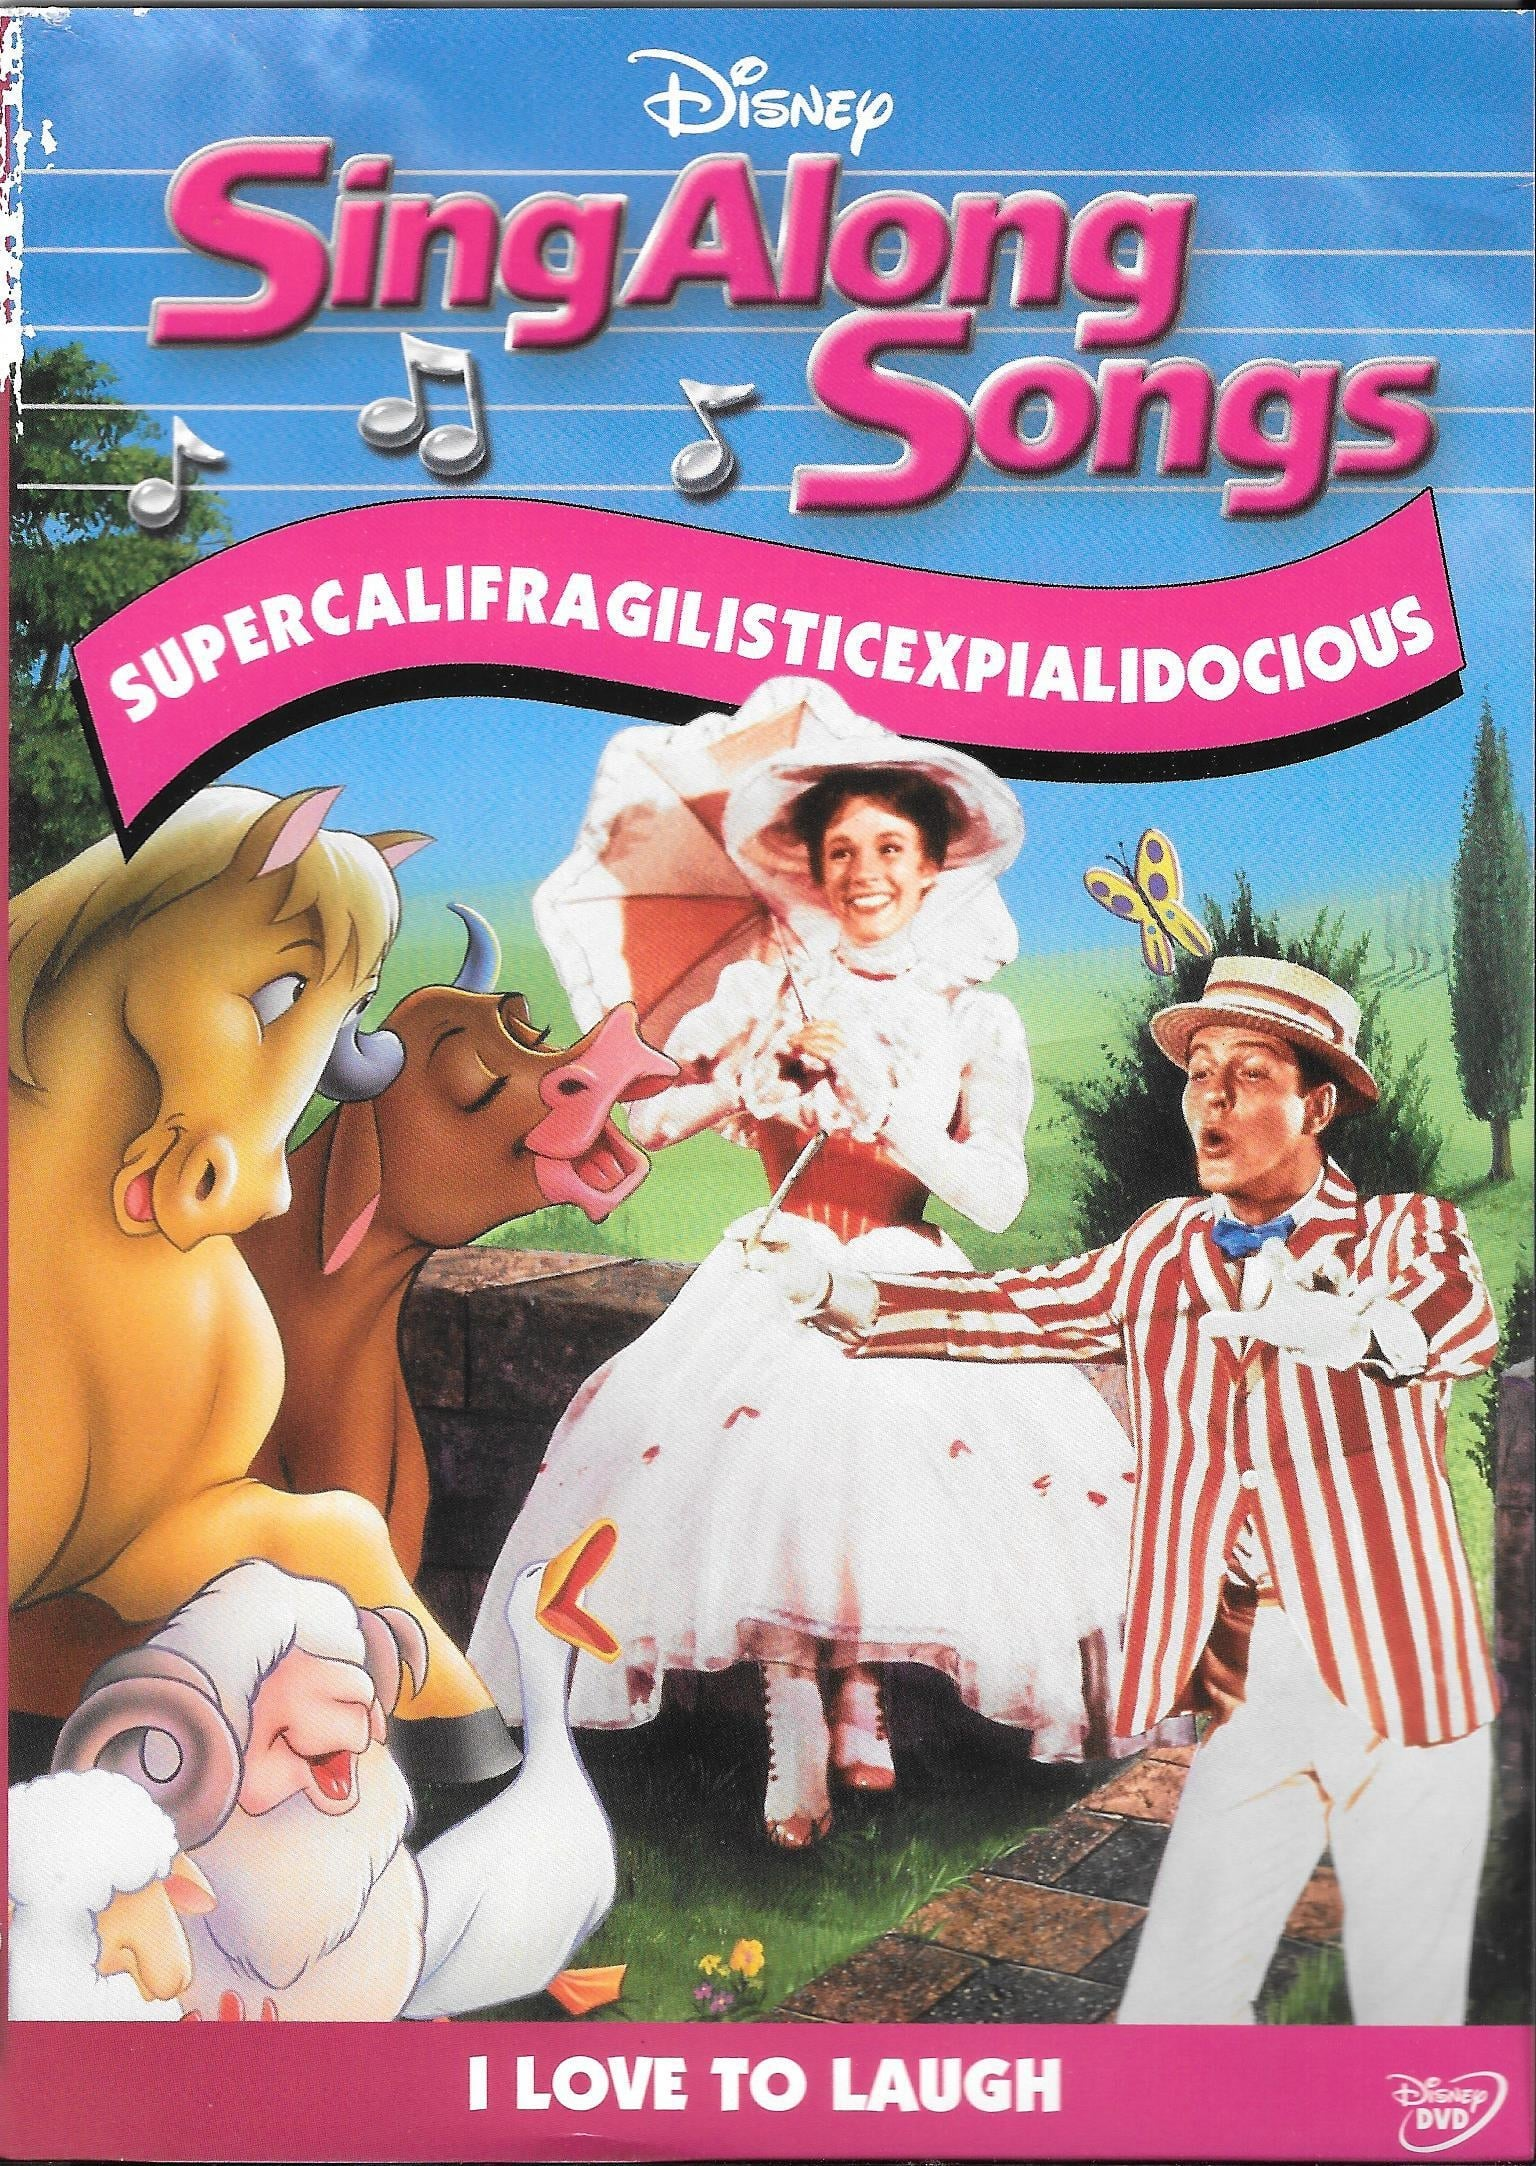 Disney Sing Along Songs I Love To Laugh : disney, along, songs, laugh, Disney, Sing-Along-Songs:, Laugh, Supercalifragilisticexpialidocious, Movie, Streaming, Online, Watch